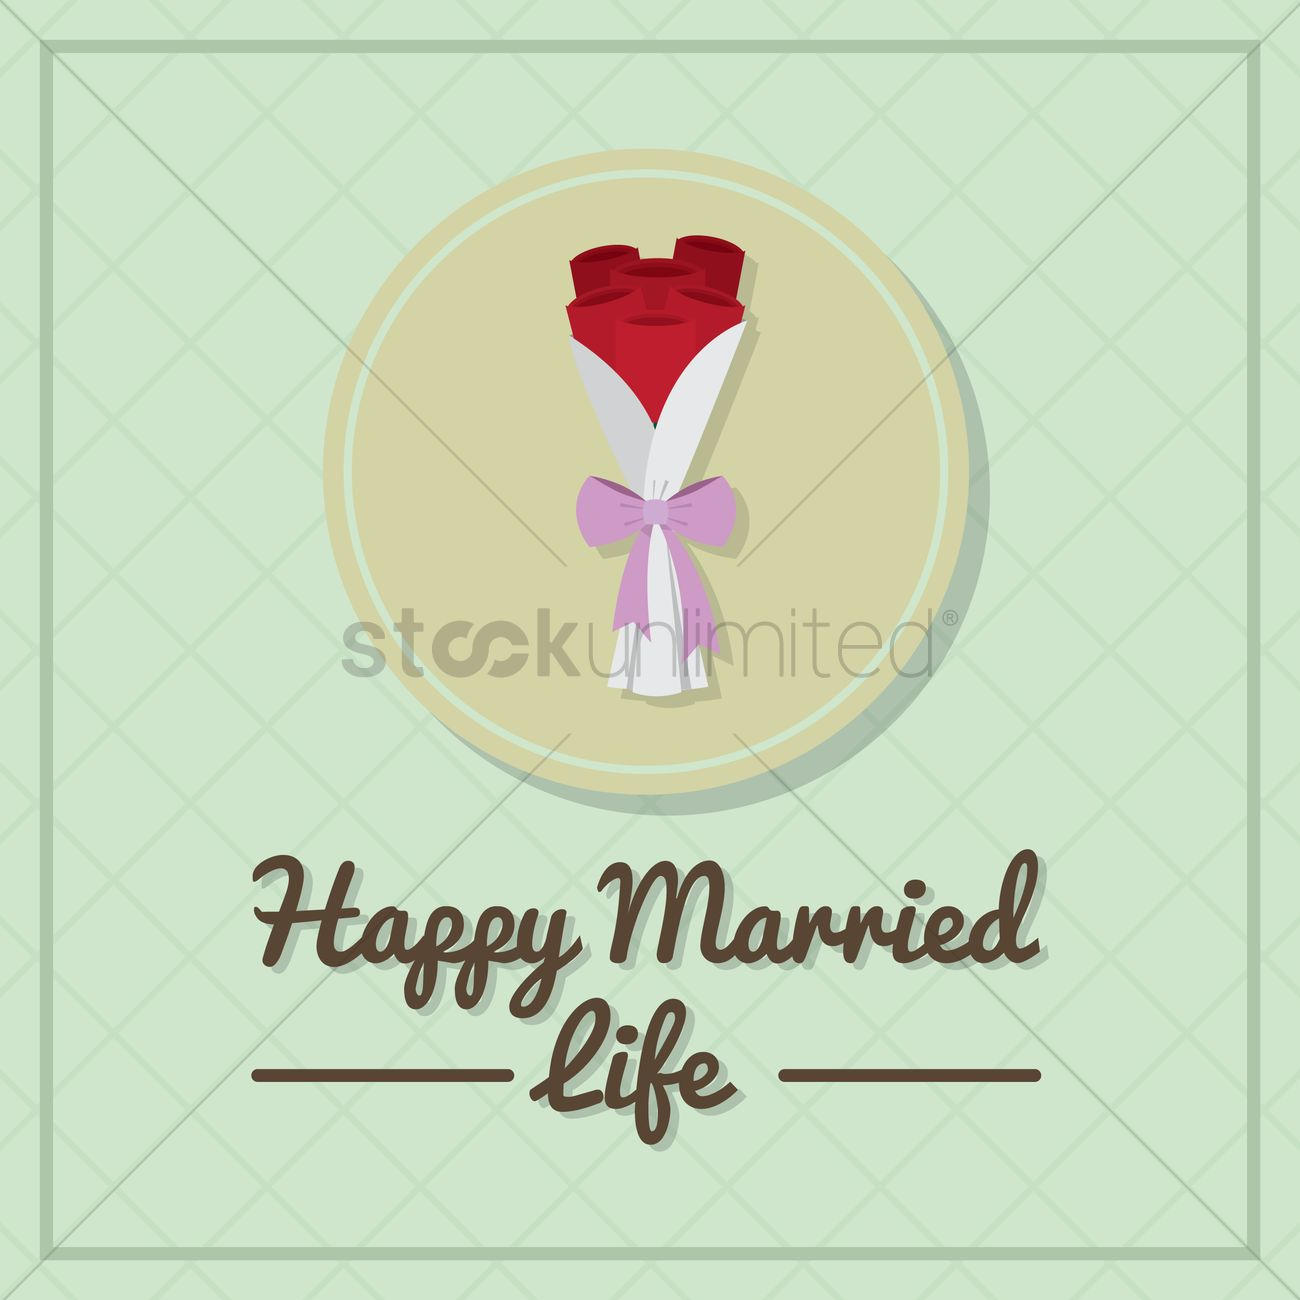 Happy Married Life Wishes Vector Image 1791560 Stockunlimited